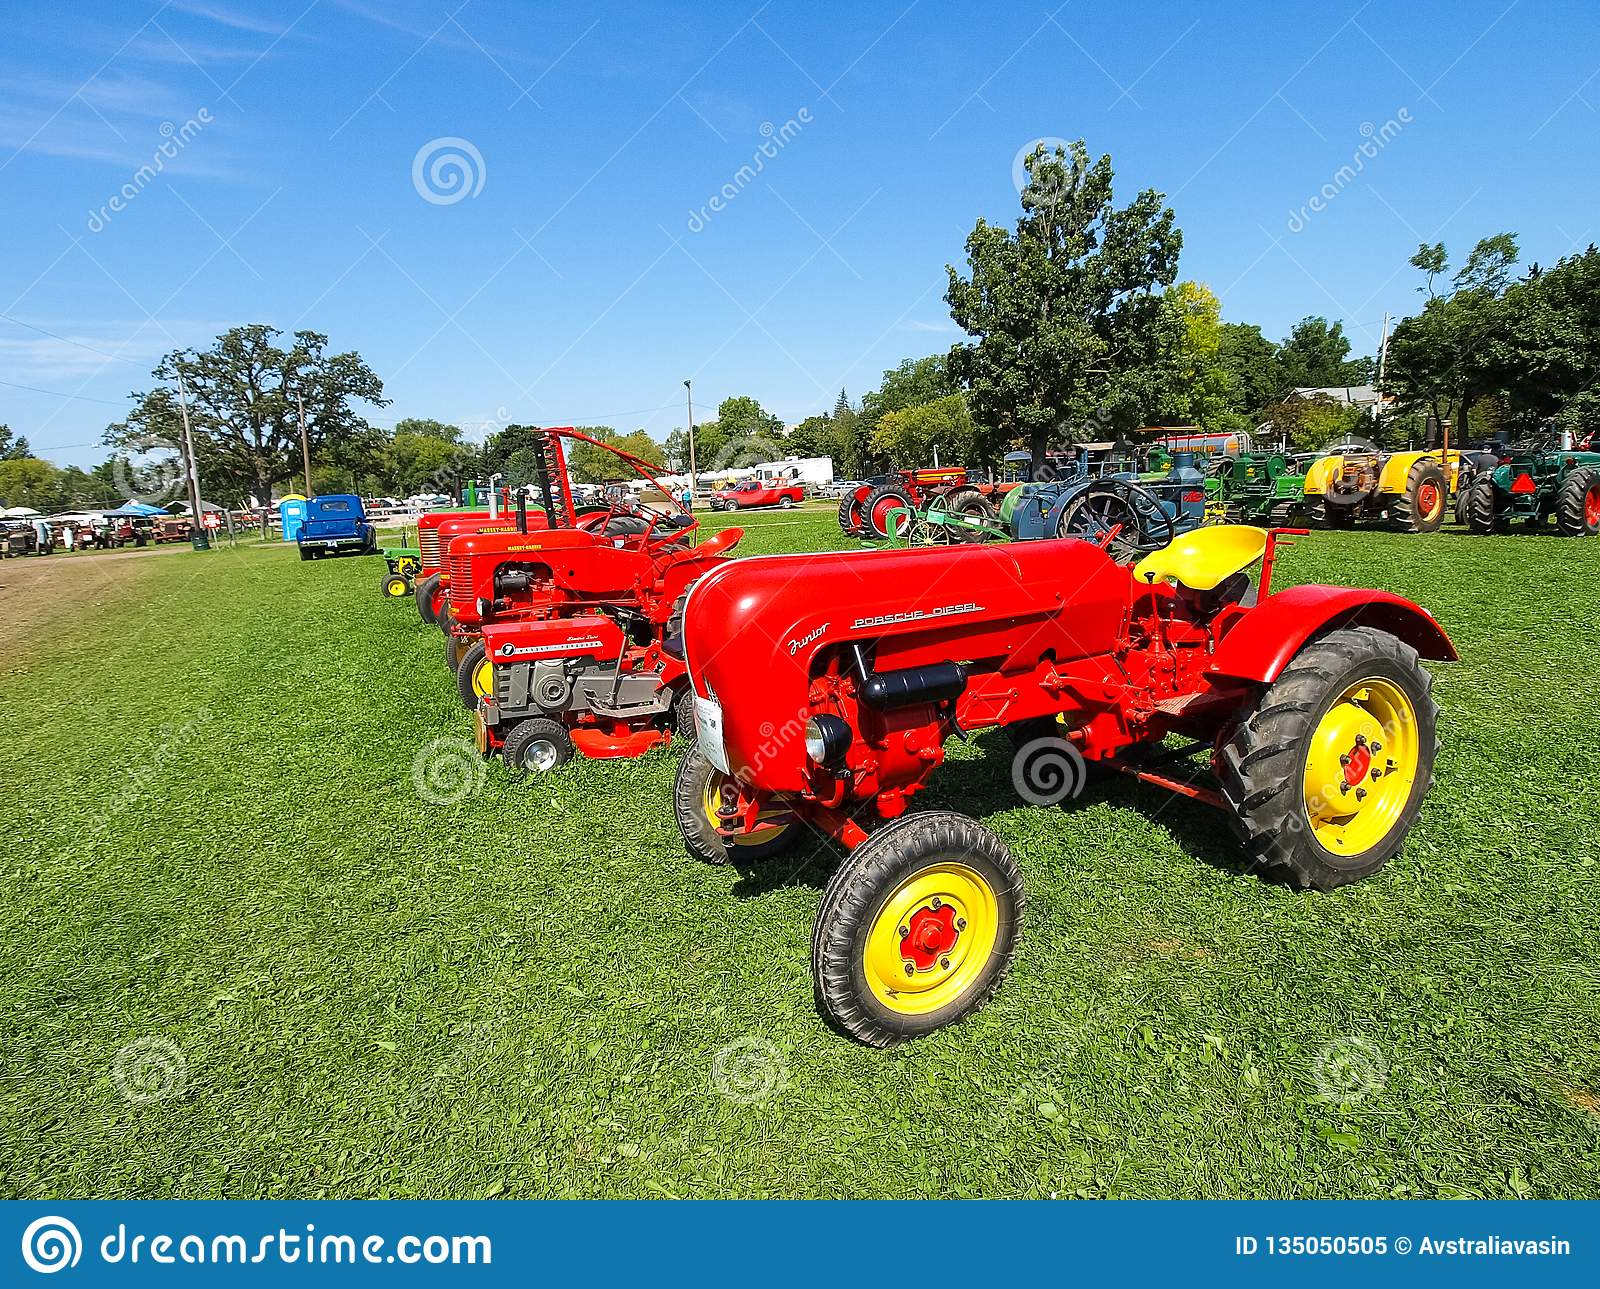 A tractor is often a large investment. Exhibition Of Antique Tractors Tractor Show Agreecultural Mach Editorial Image Image Of Fair Industry 135050505